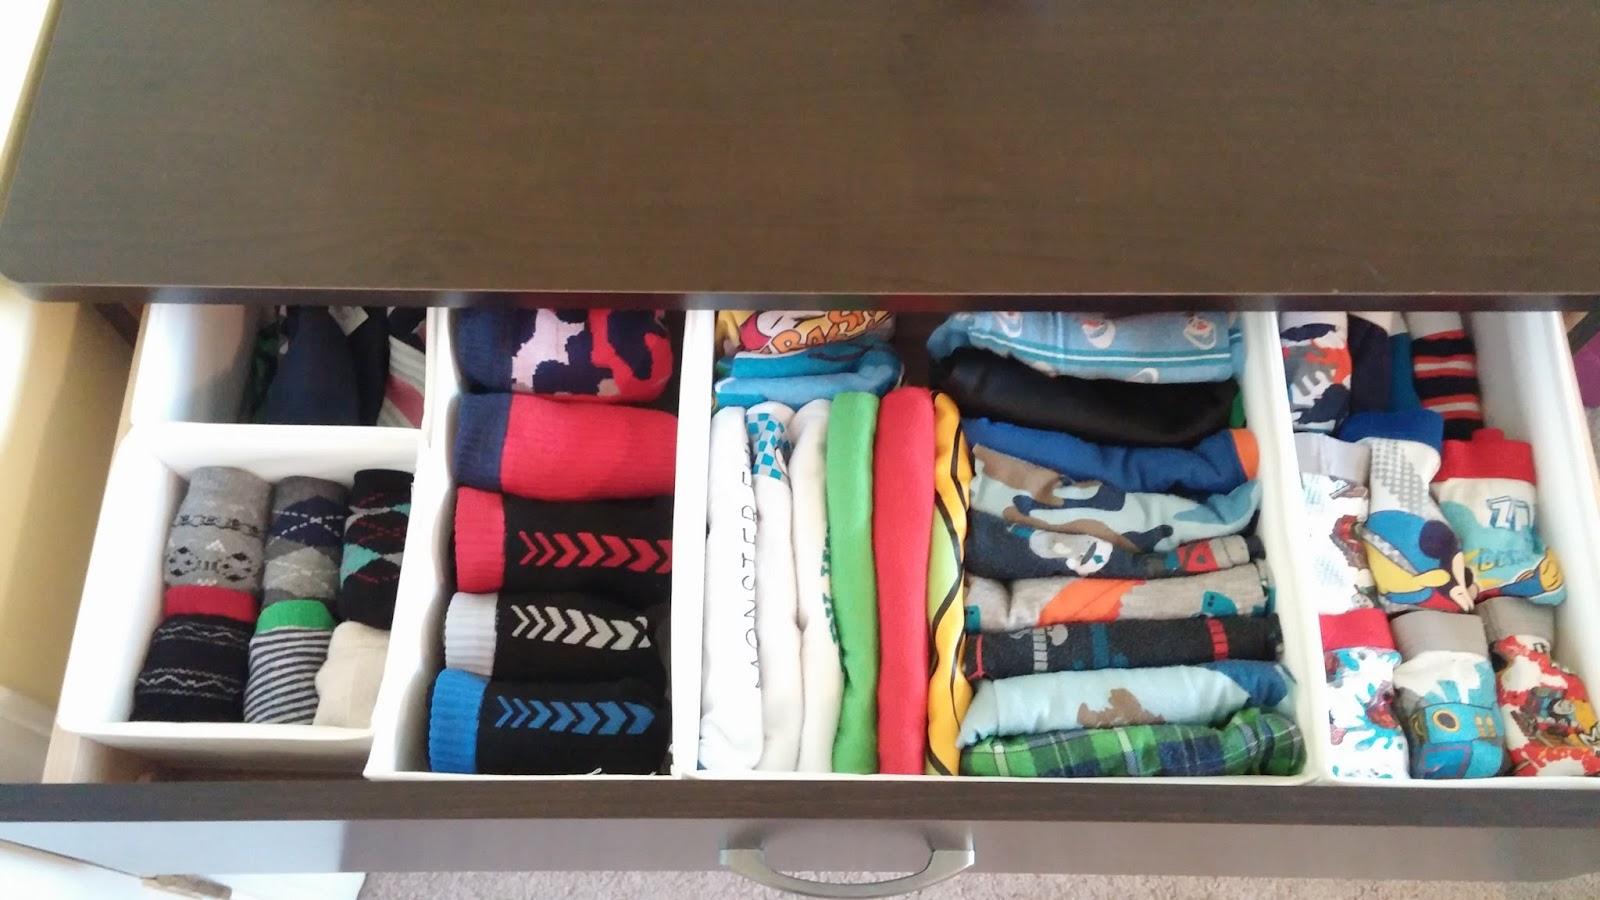 restore order organizing kids clothes in drawers. Black Bedroom Furniture Sets. Home Design Ideas